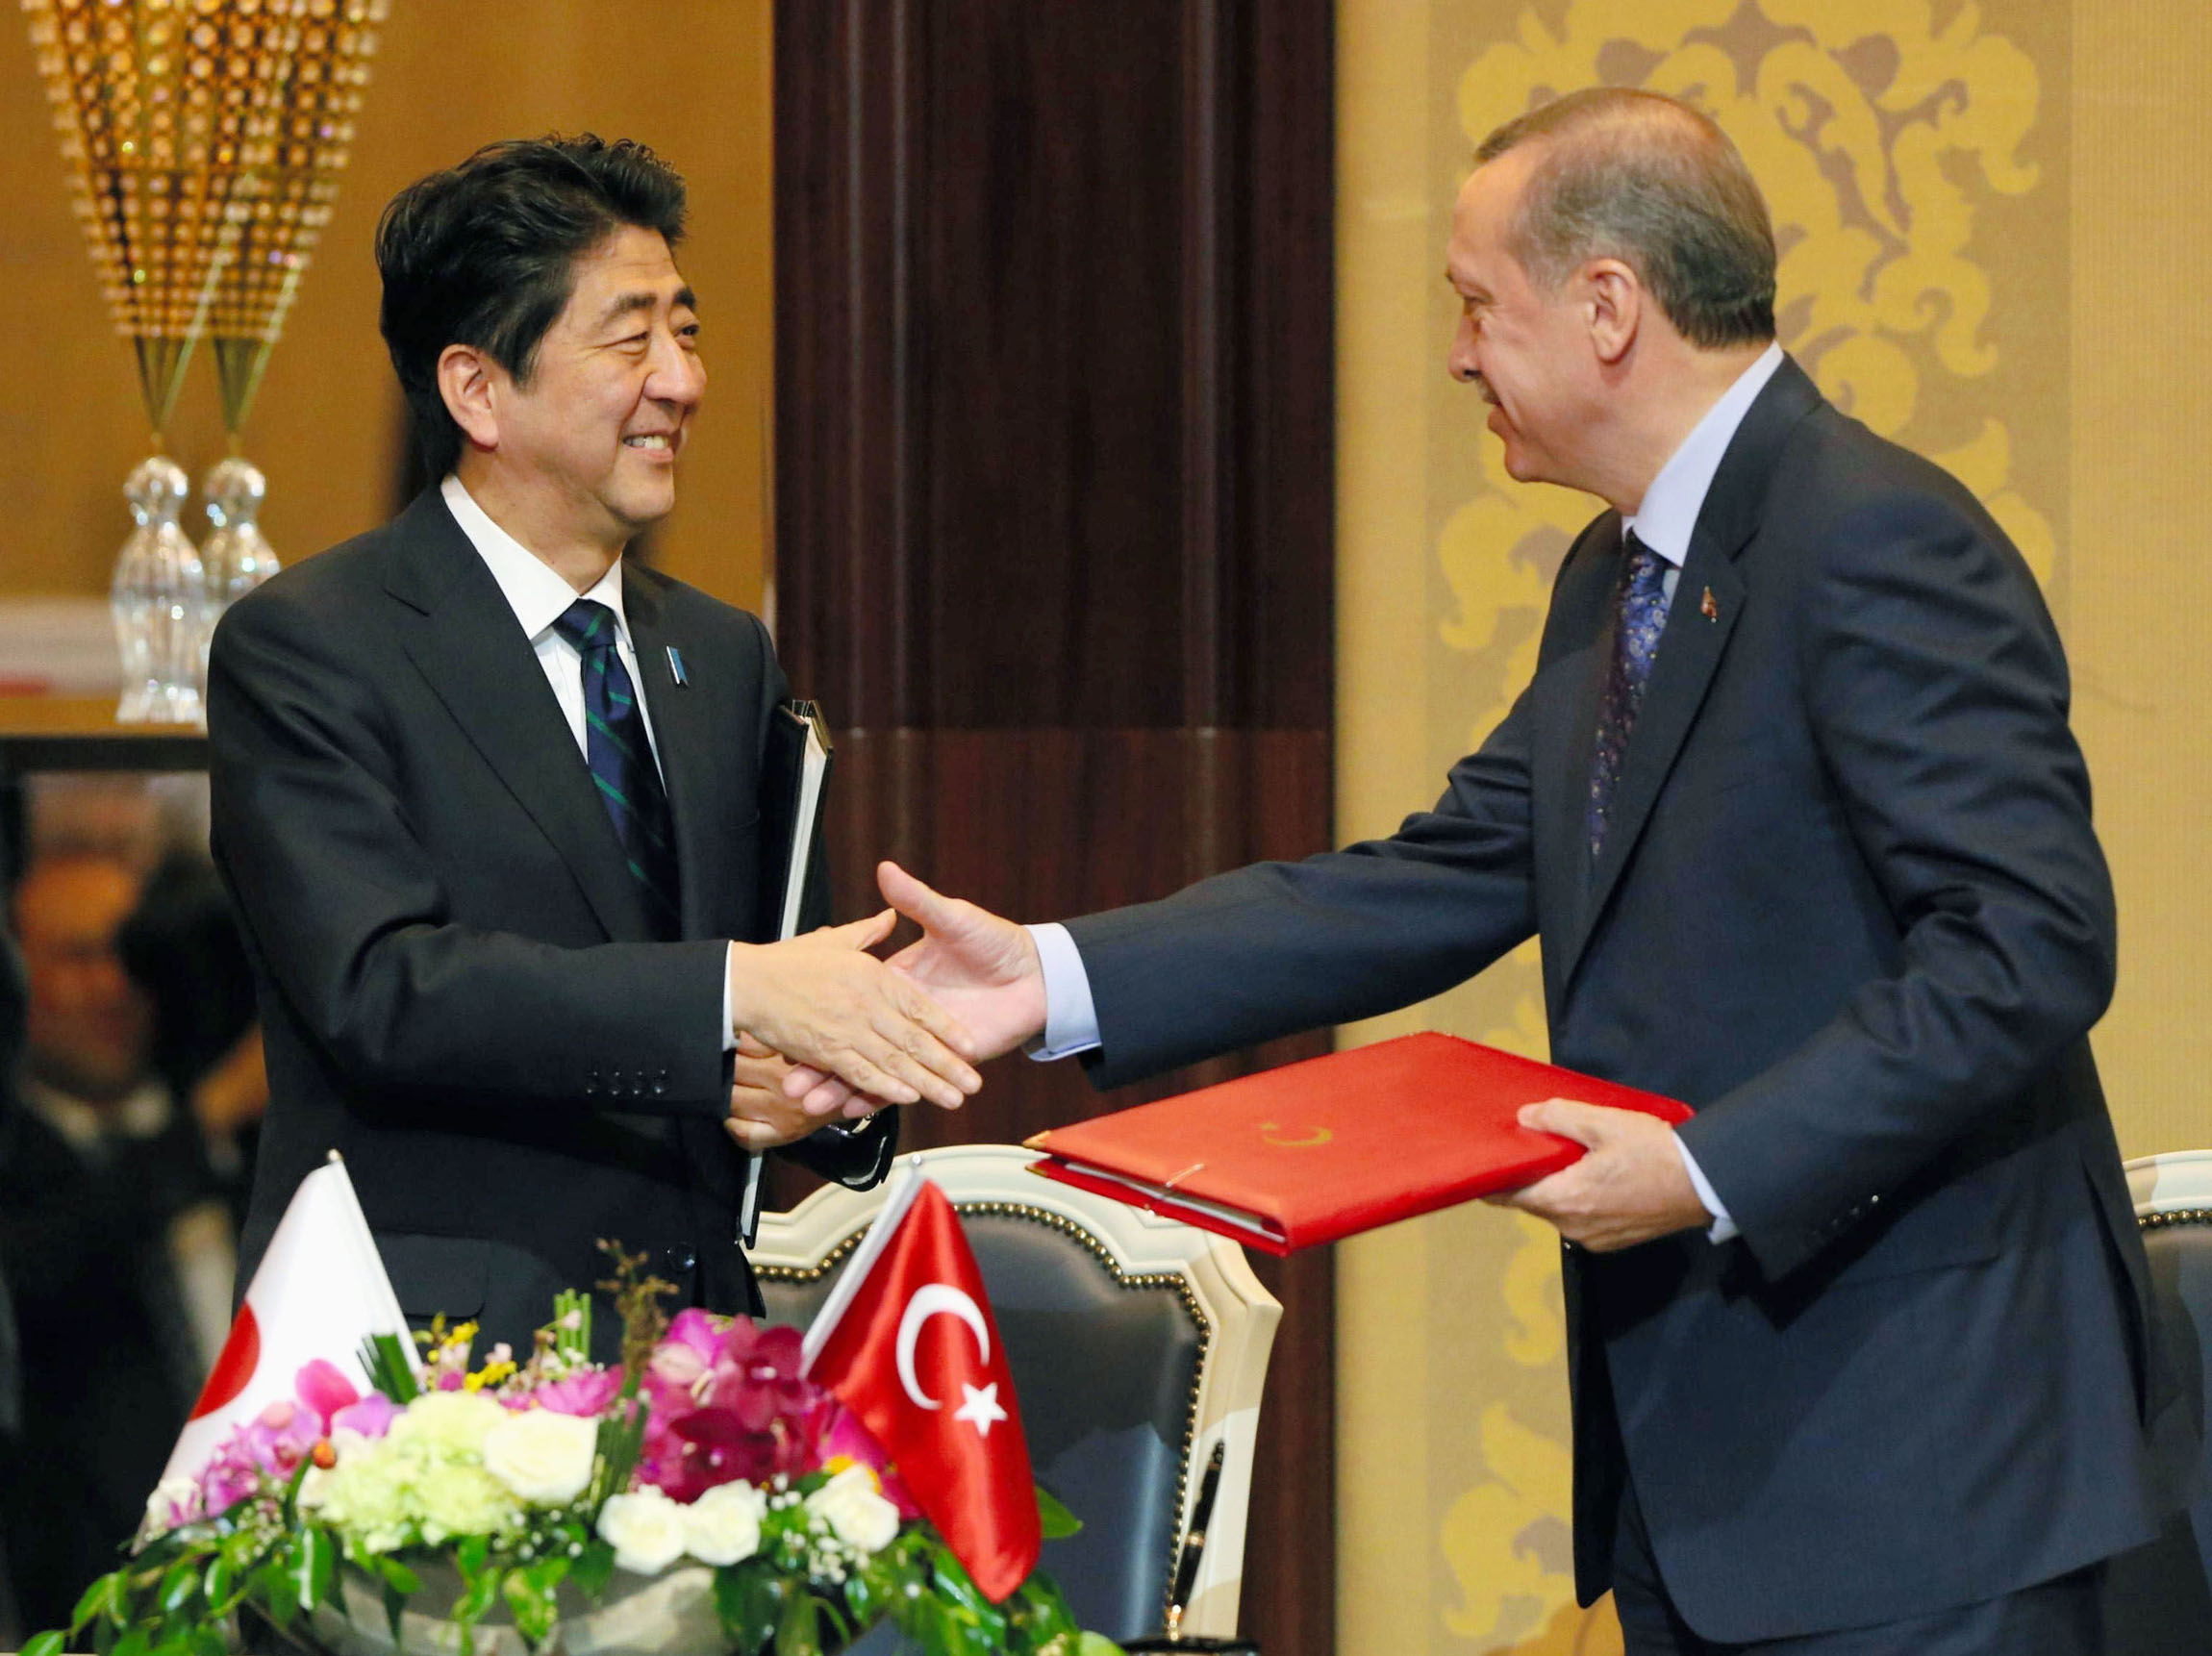 Finding a niche: Prime Minister Shinzo Abe and Turkish Prime Minister Recep Tayyip Erdogan celebrate after signing a civil nuclear cooperation pact in Ankara in May. The pact is one of the fruits of Abe's efforts to boost exports of reactors. | KYODO